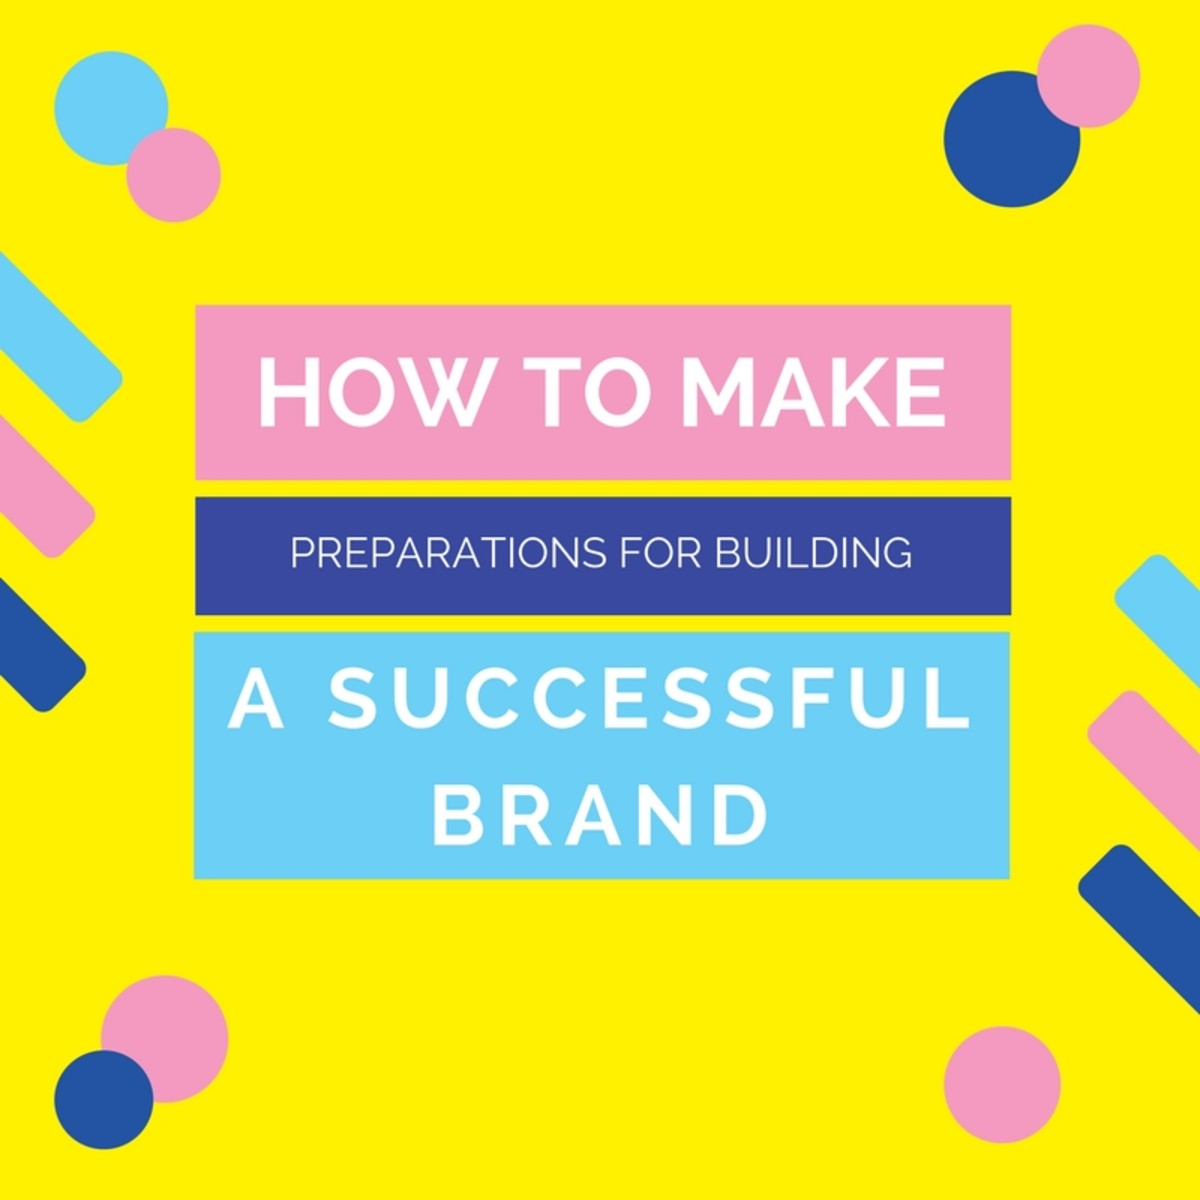 How to Make Preparations for Building a Successful Brand